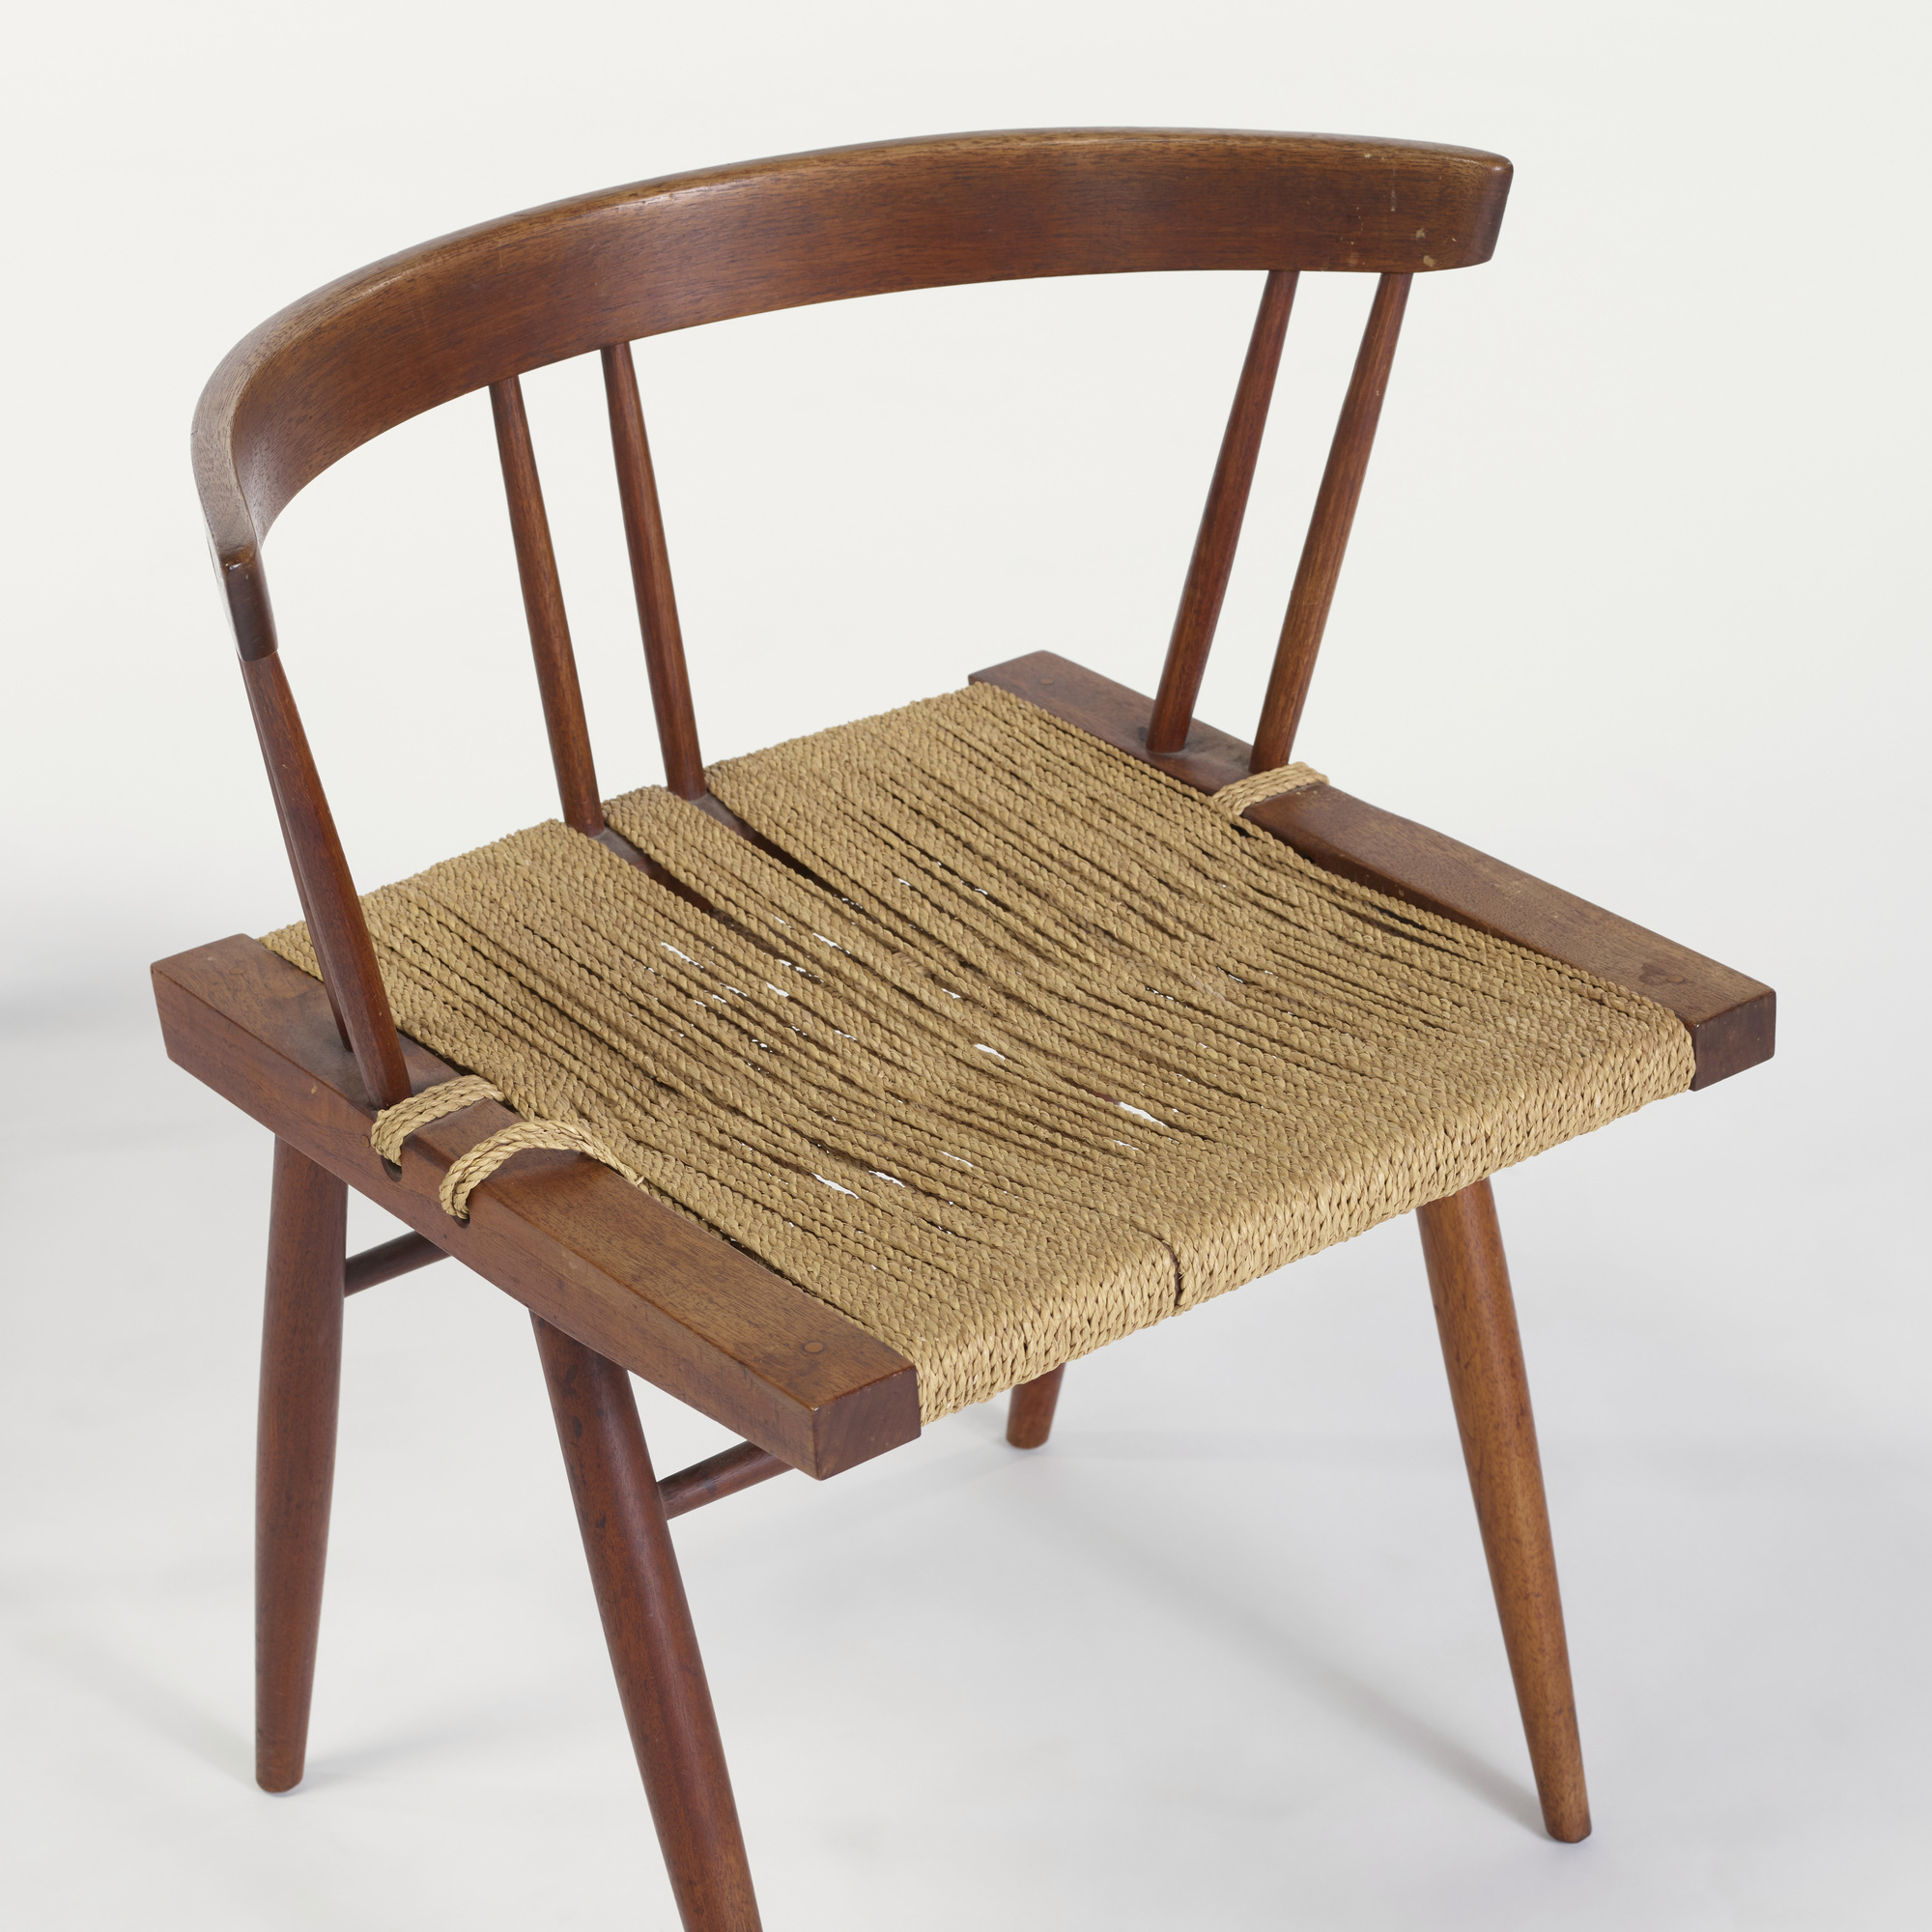 Attirant ... 142: George Nakashima / Grass Seated Chairs, Pair (3 Of 3)